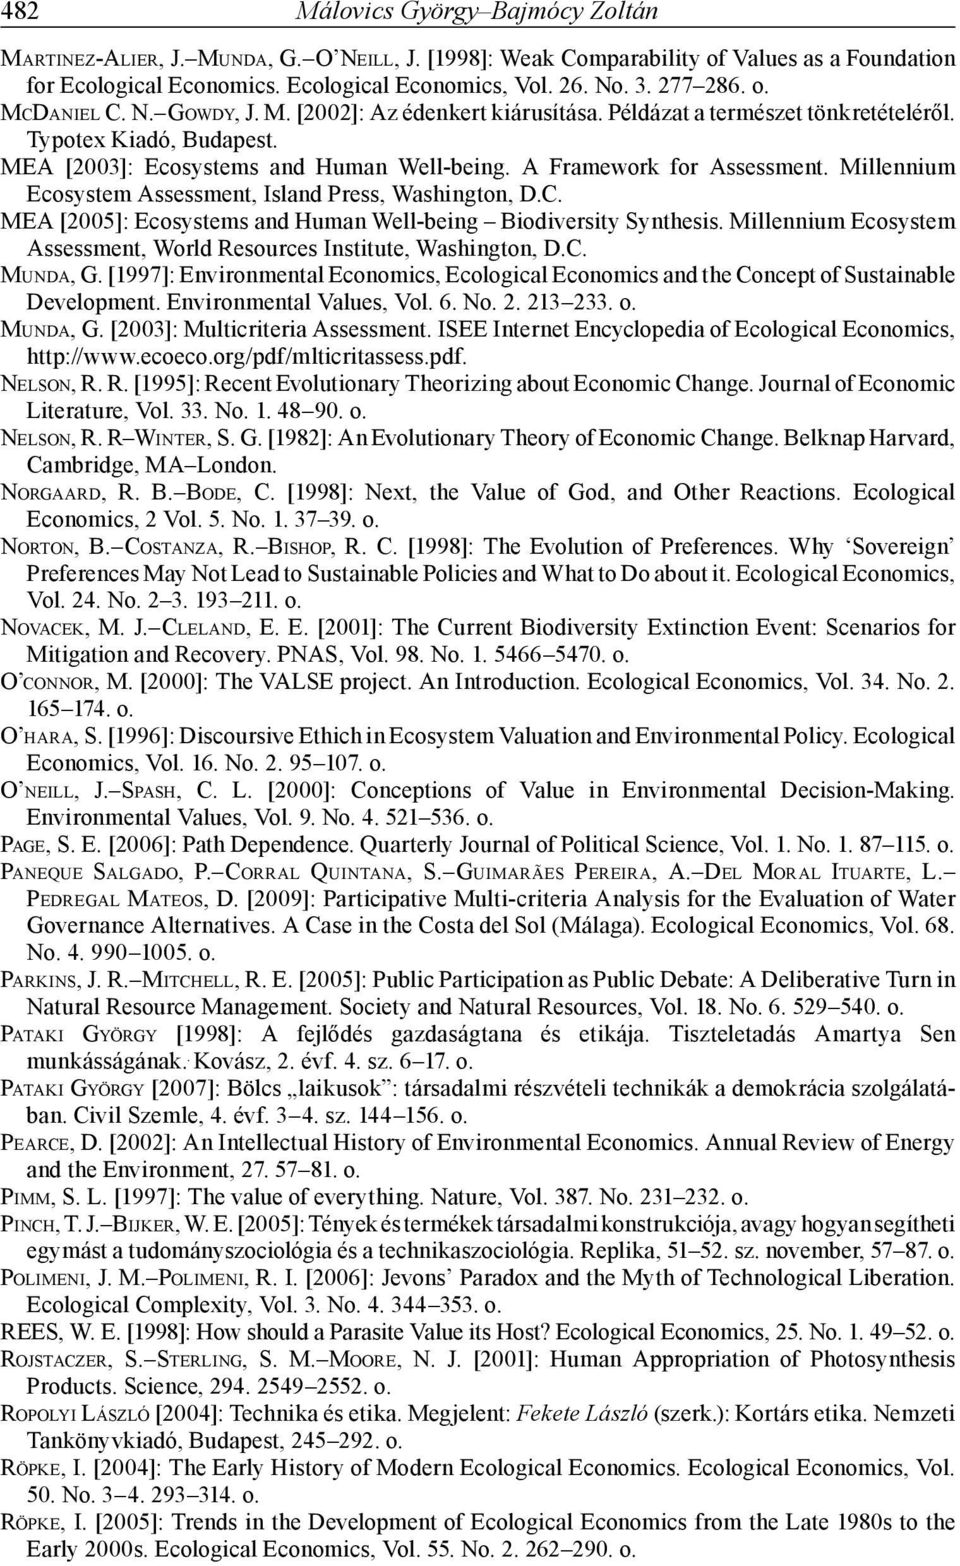 A Framework for Assessment. Millennium Ecosystem Assessment, Island Press, Washington, D.C. MEA [2005]: Ecosystems and Human Well-being Biodiversity Synthesis.